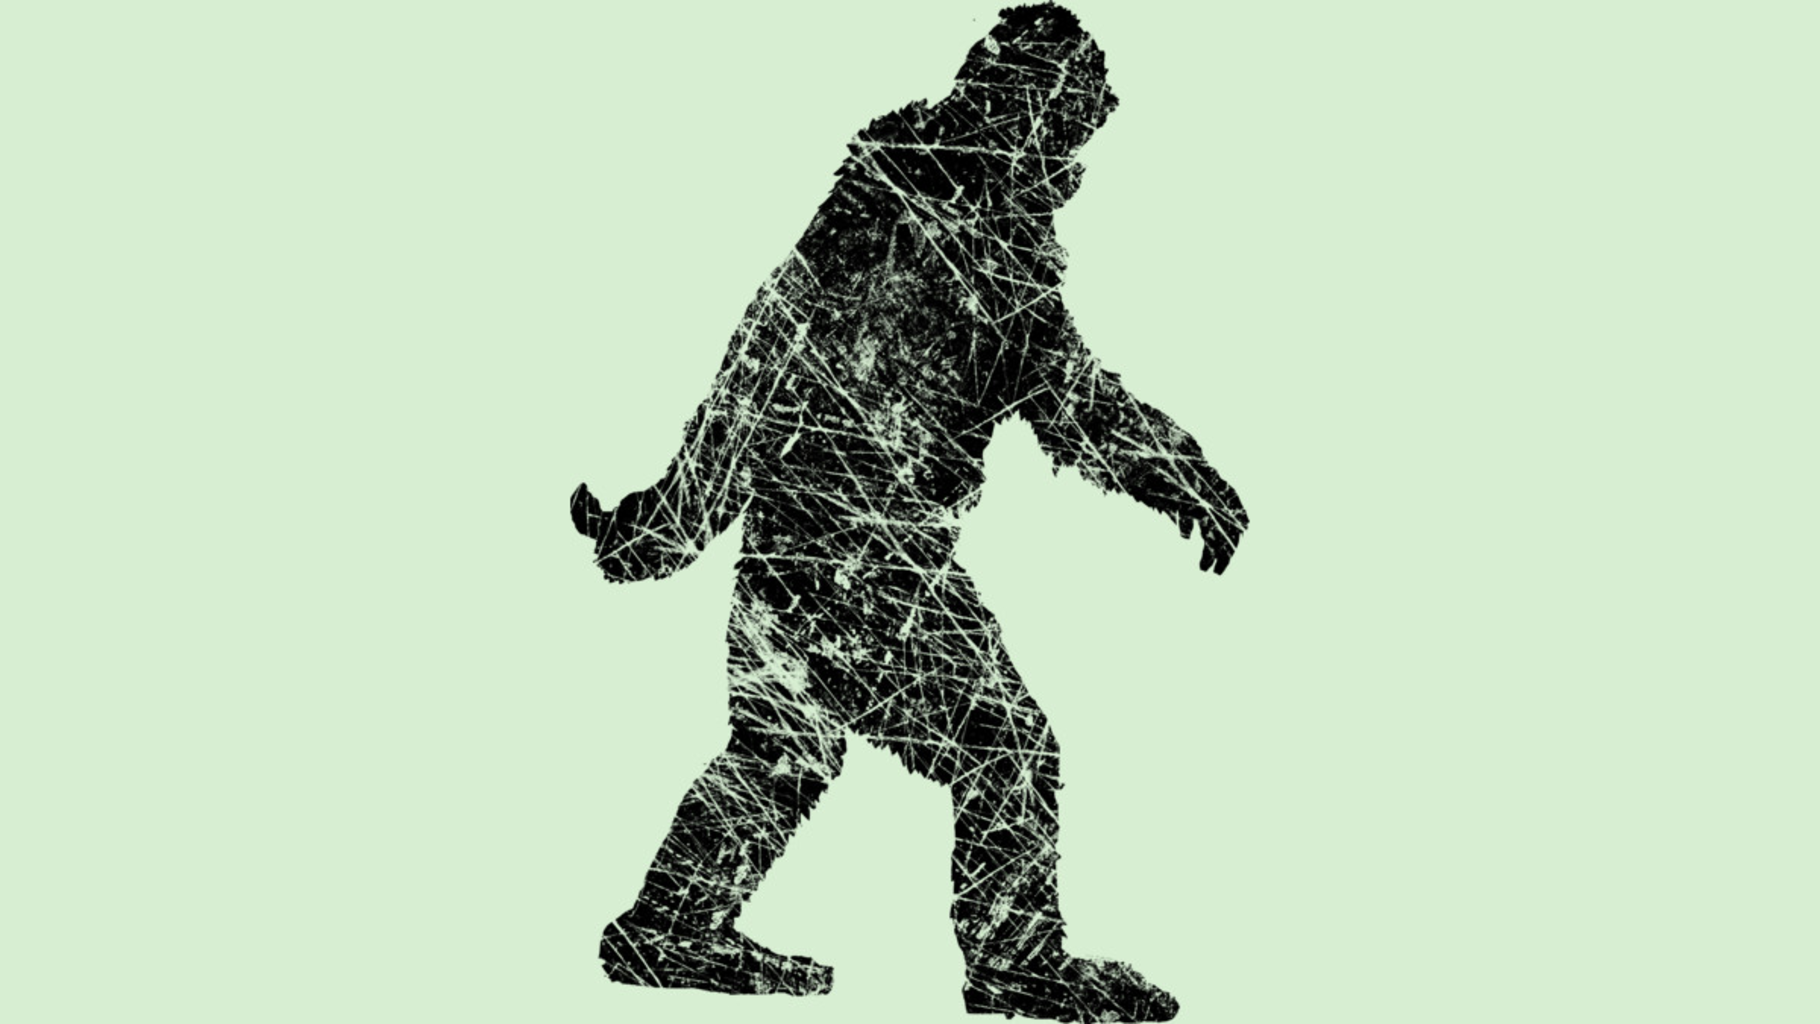 Design by Humans: Grunge Sasquatch BigFoot